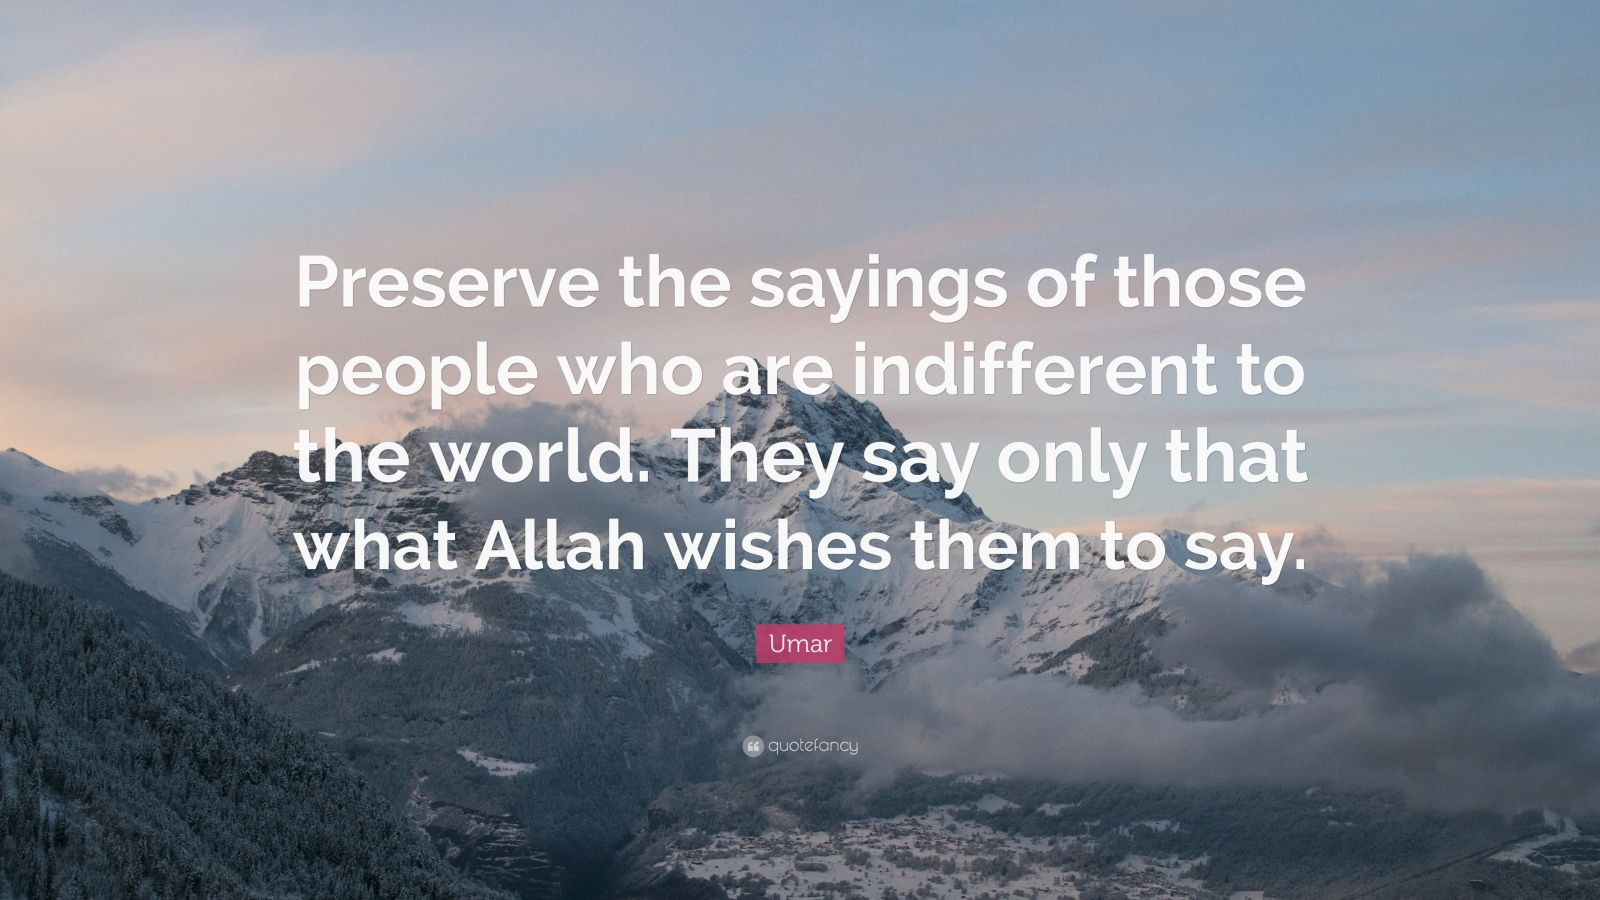 """Umar Quote: """"Preserve the sayings of those people who are indifferent to the world. They say only that what Allah wishes them to say."""""""